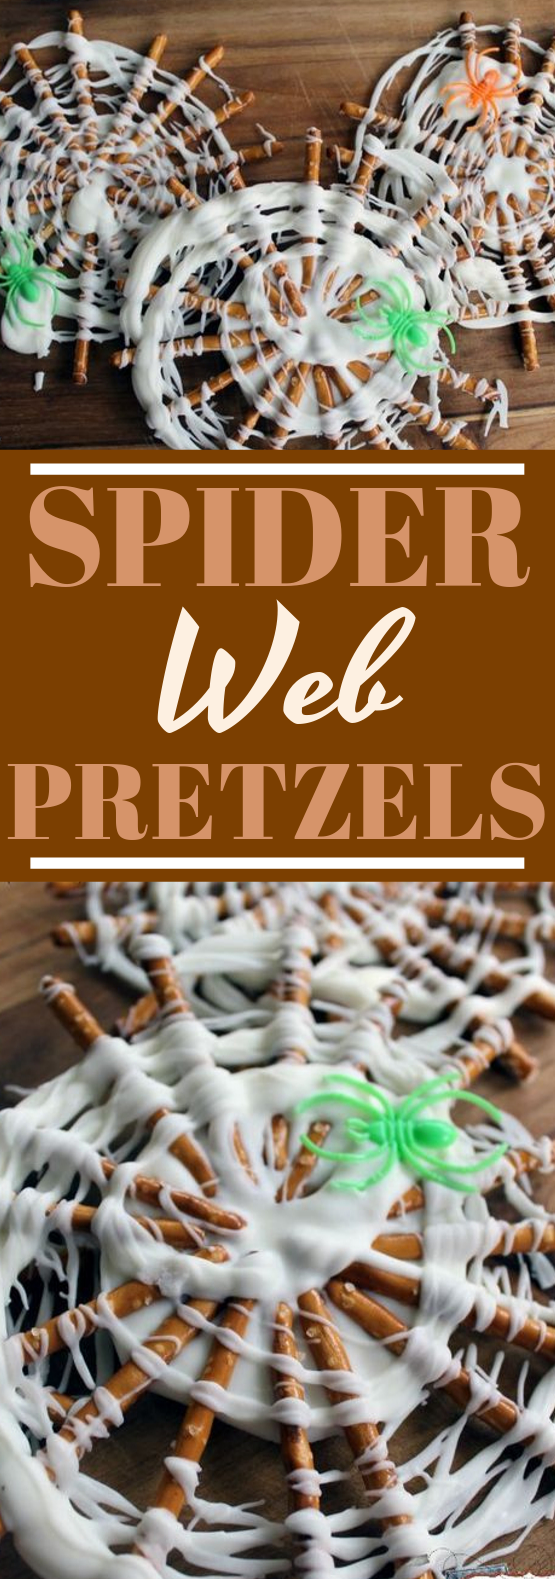 Spider Web Pretzels #desserts #party #halloween #recipes #nobake